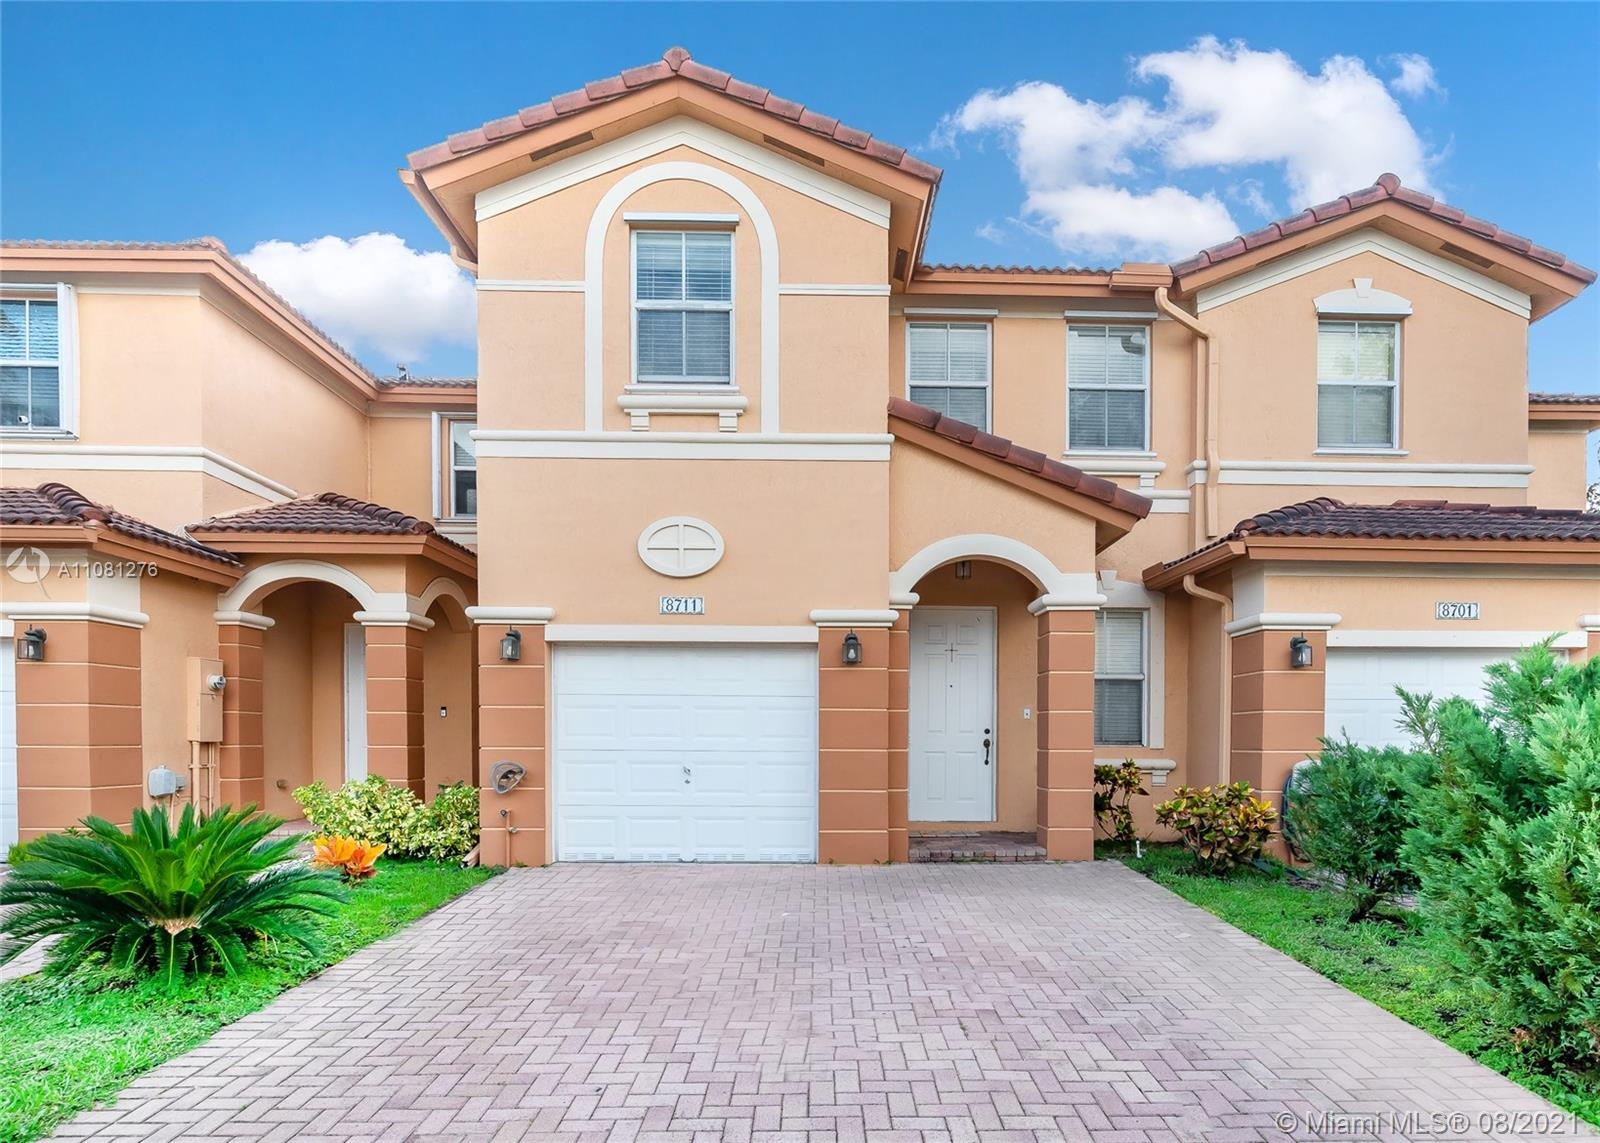 Islands At Doral - 8711 NW 112th Ct, Doral, FL 33178